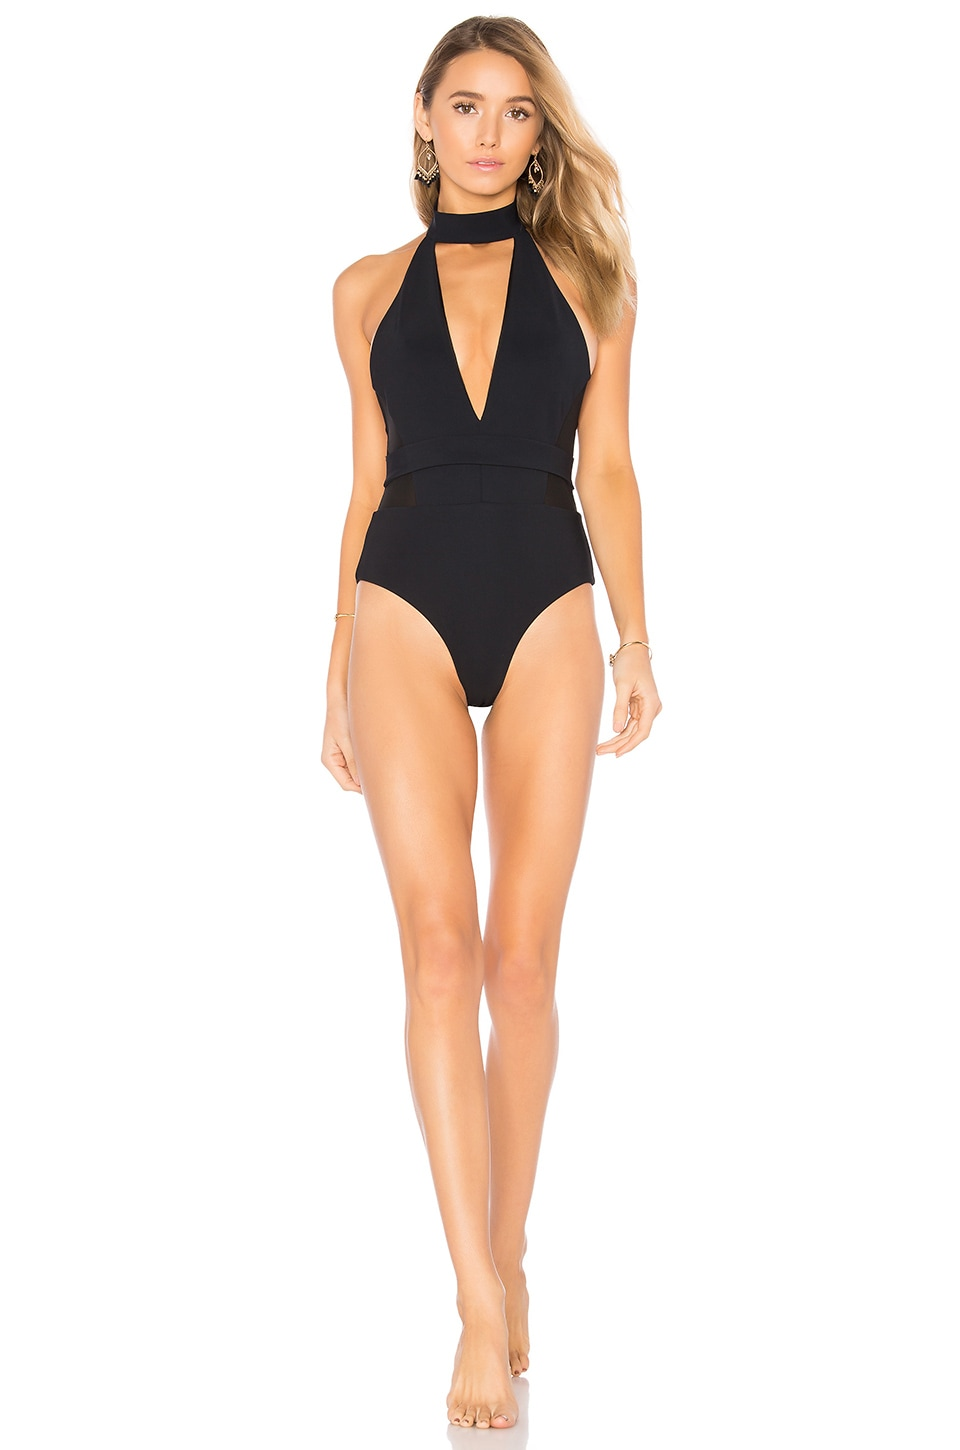 Zigilane KKW One Piece in Black